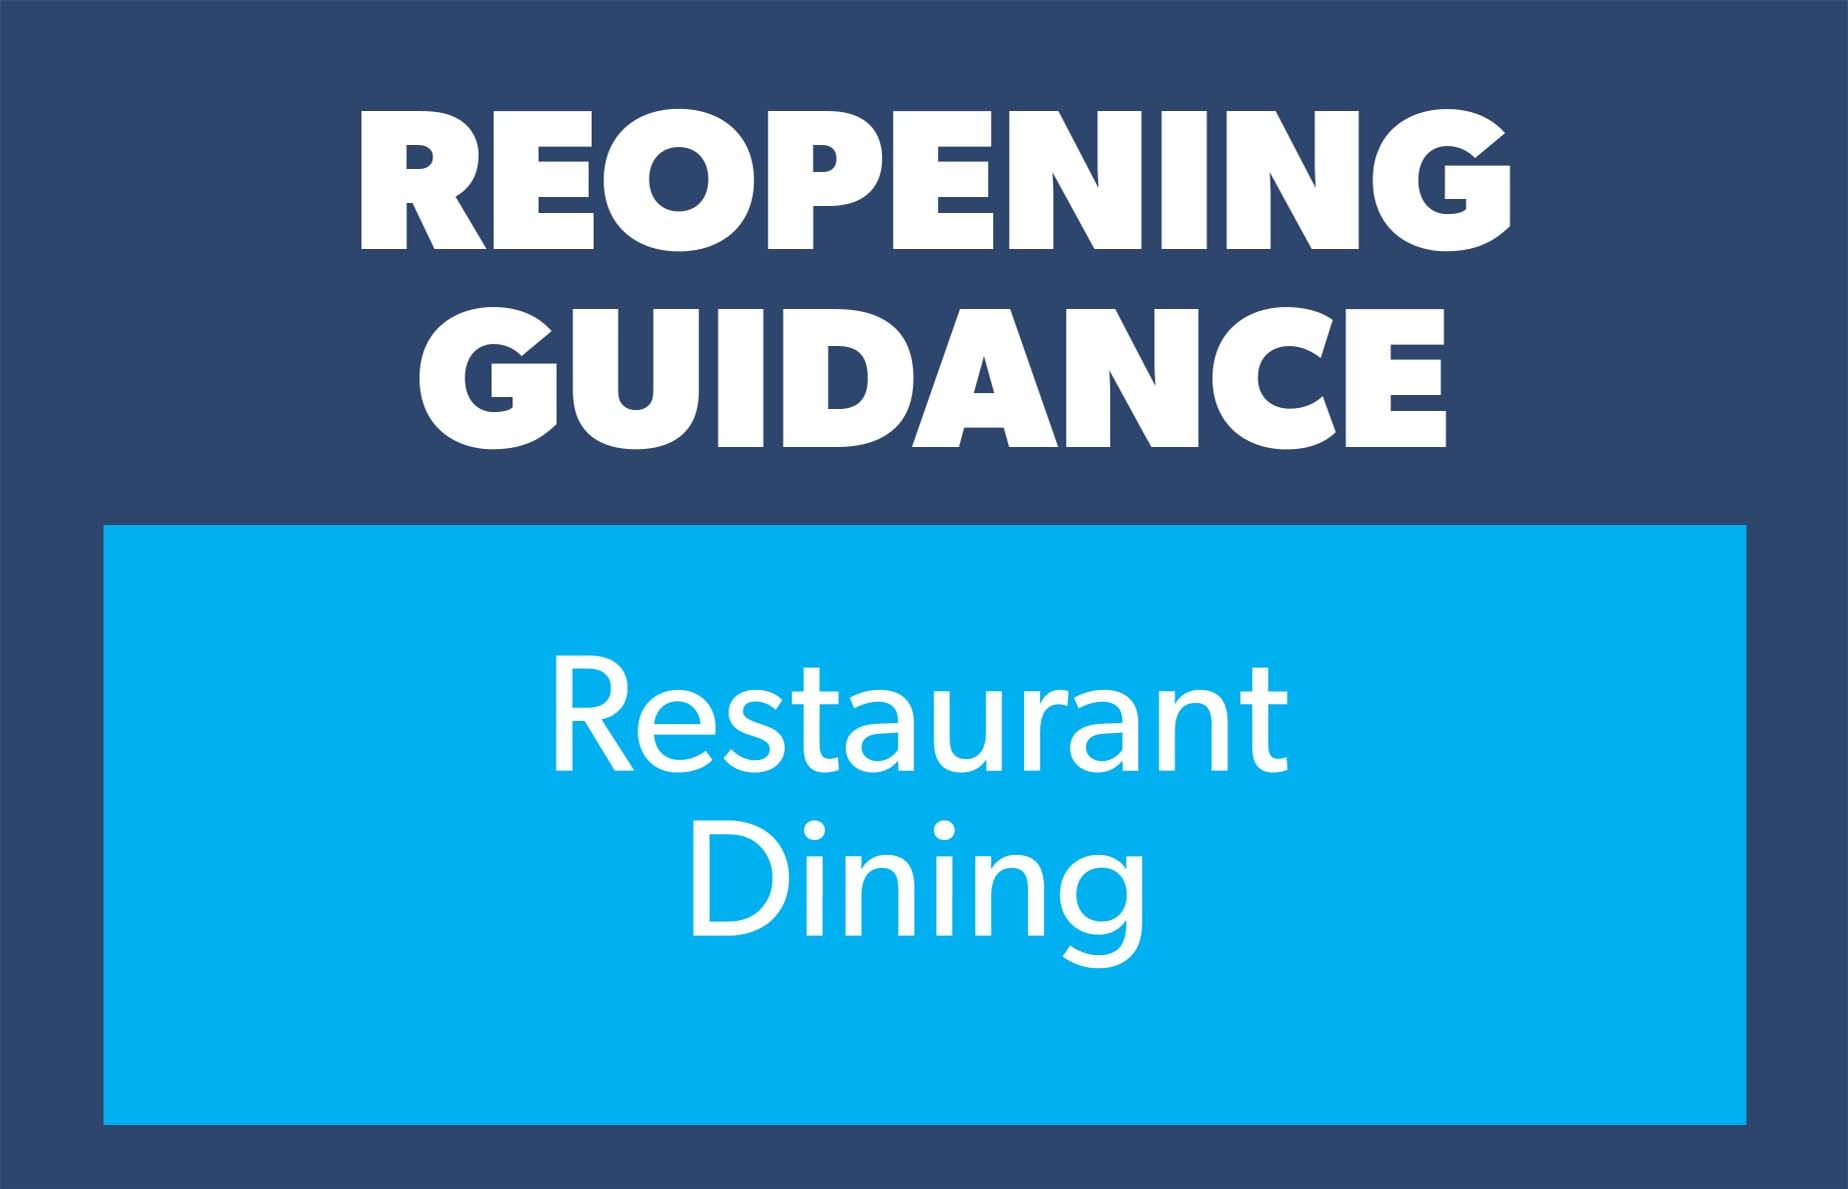 Guidance rest dining